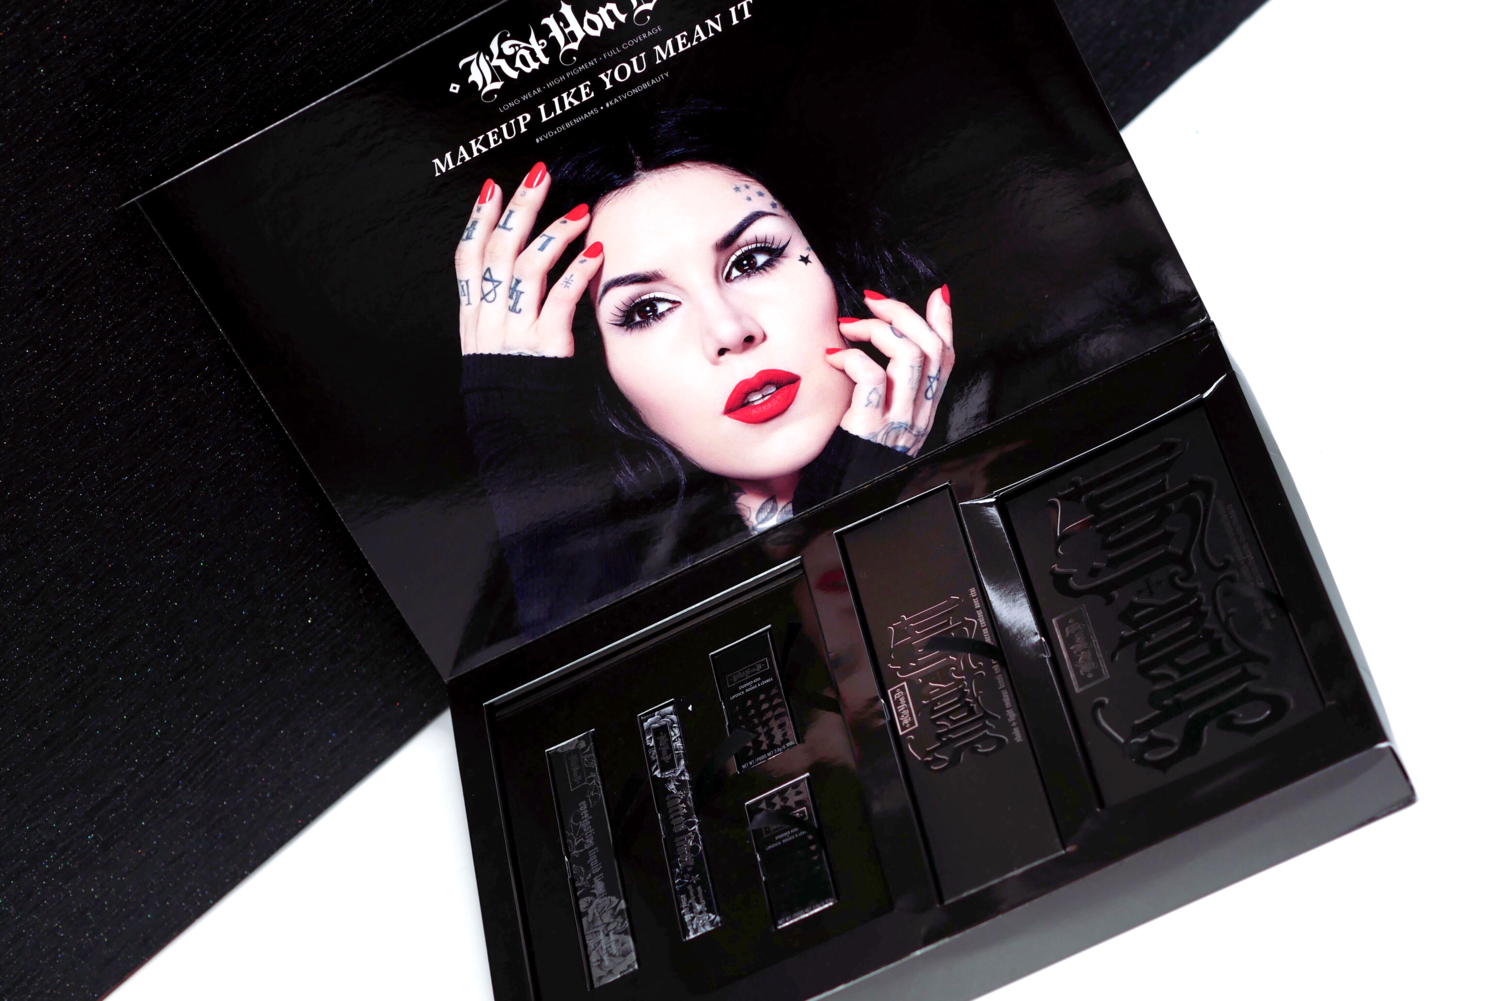 kat von d, eyeliner, beauty products, makeup, london fashion girl, laura blair